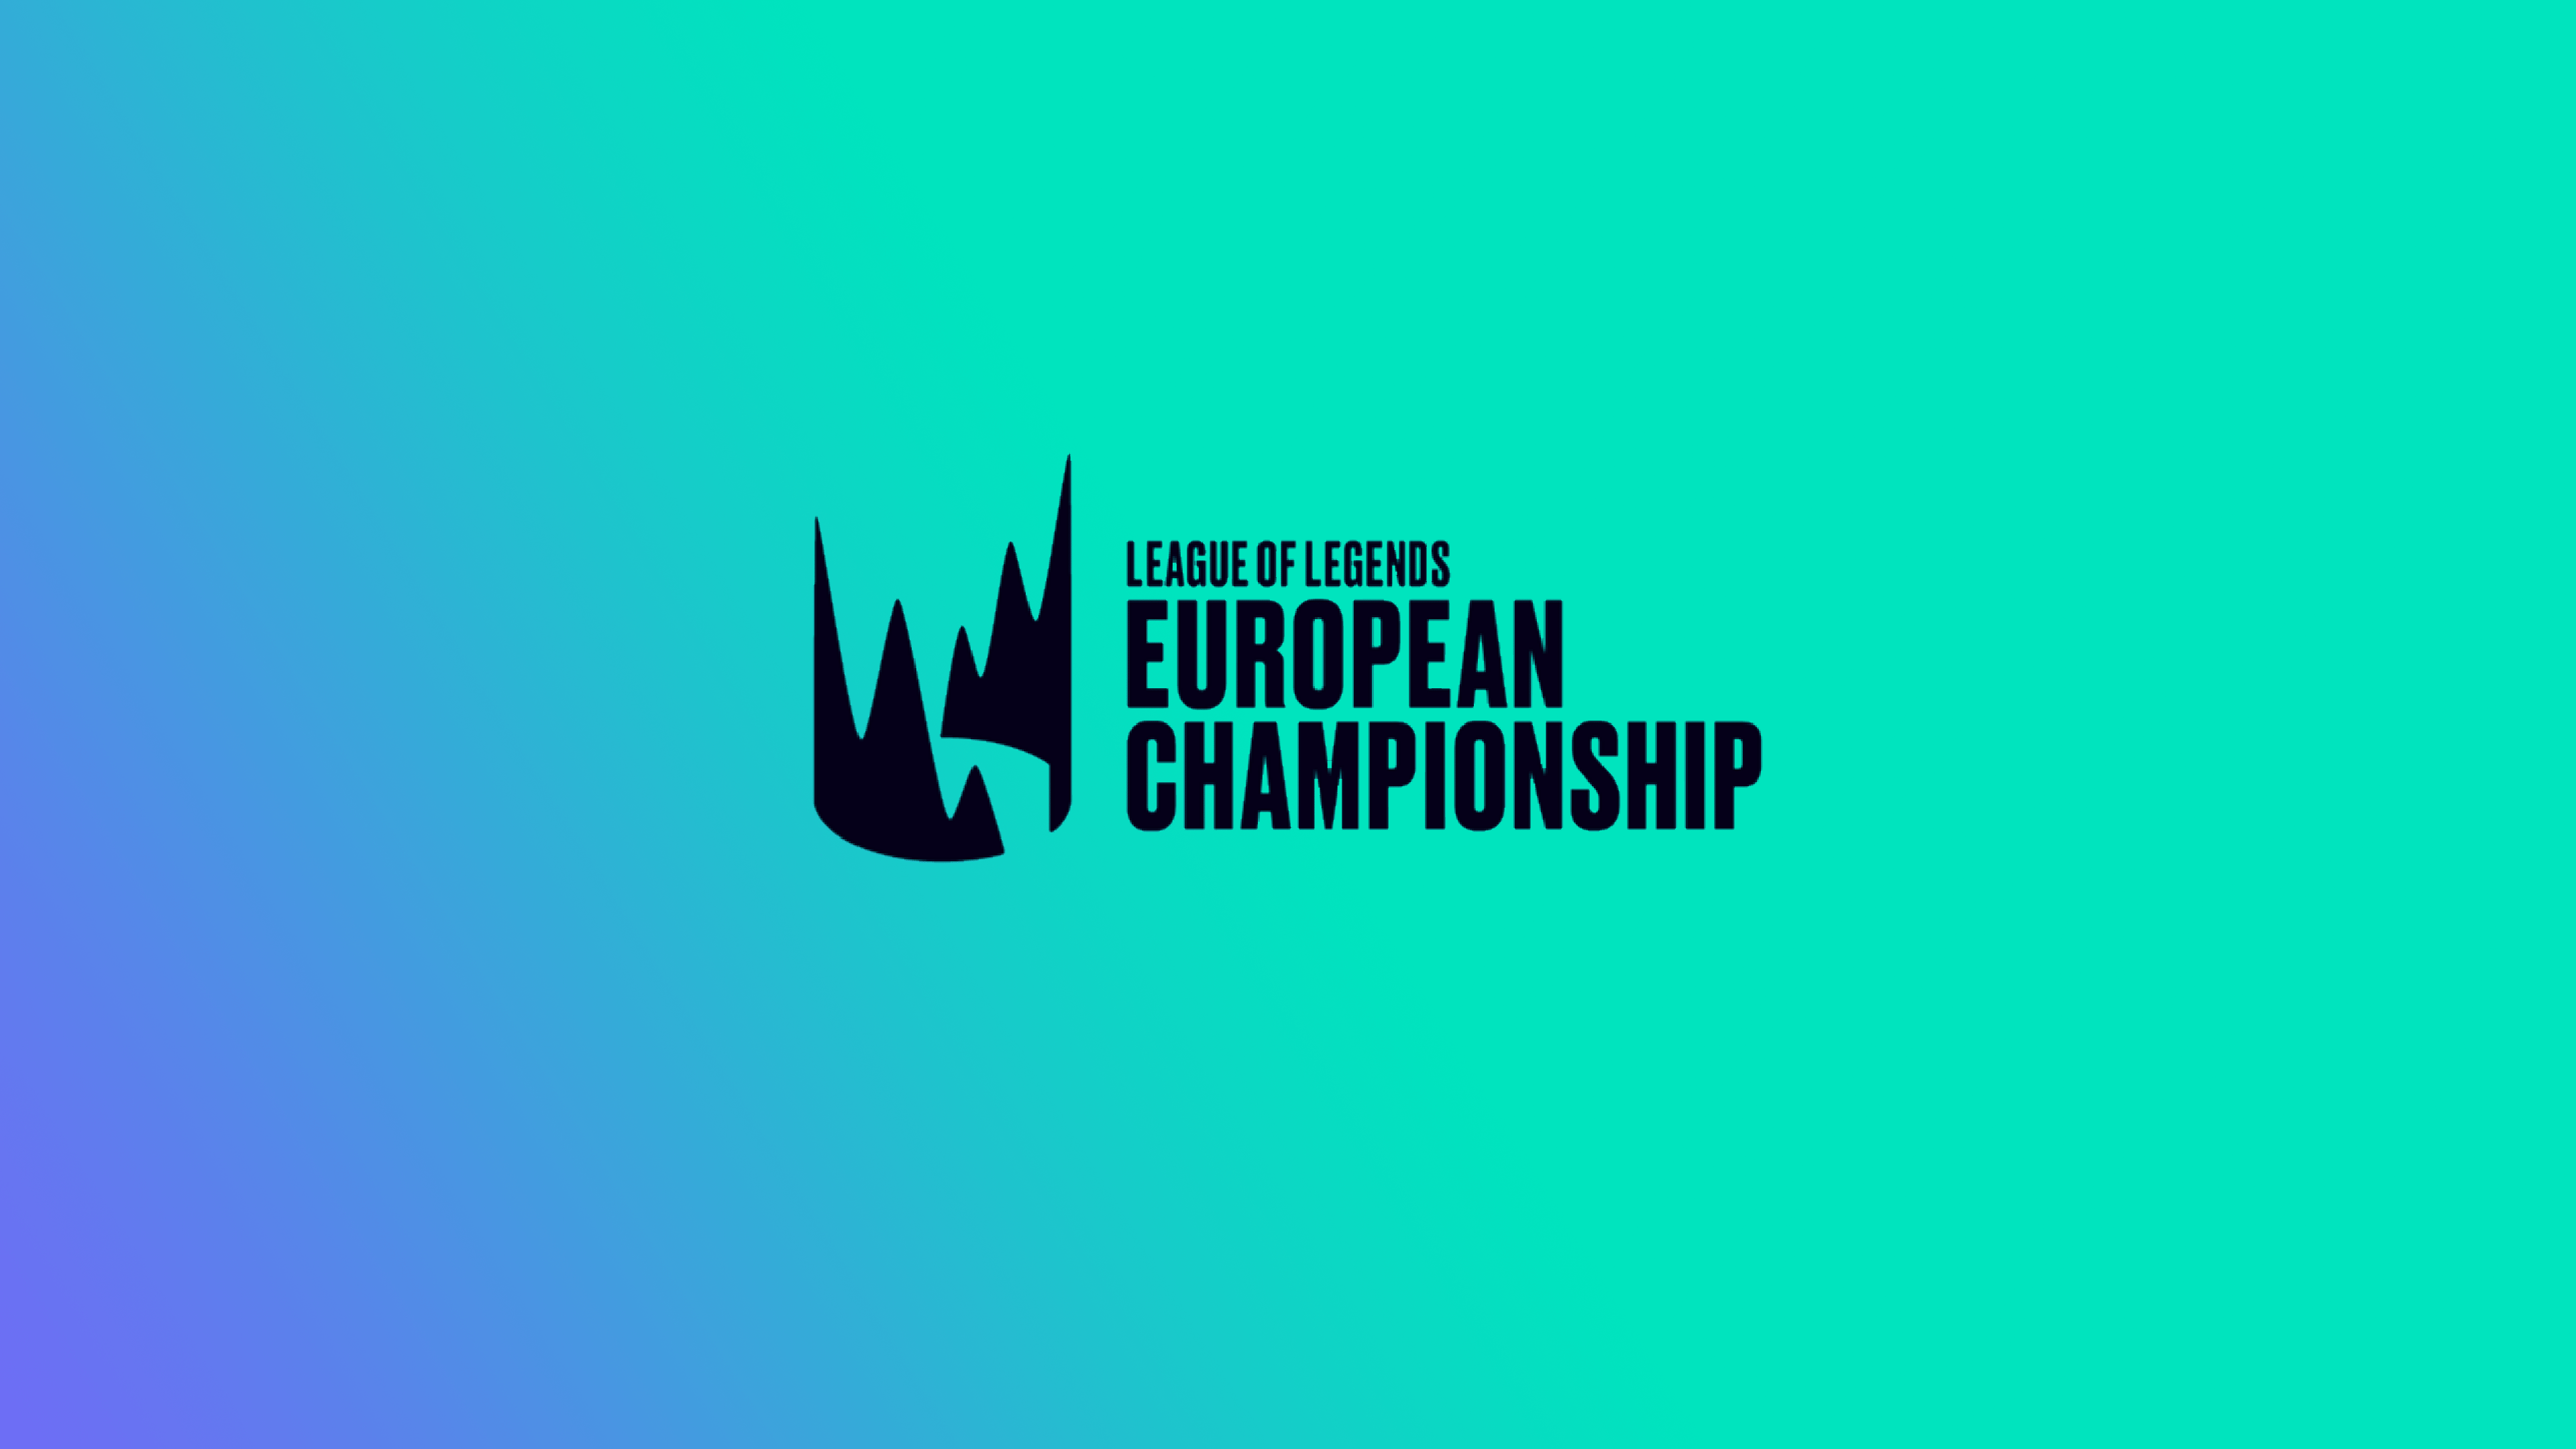 LEC – The Summer Split Finals Between Fnatic And G2 Esports Got More Than One Million Unique Viewers